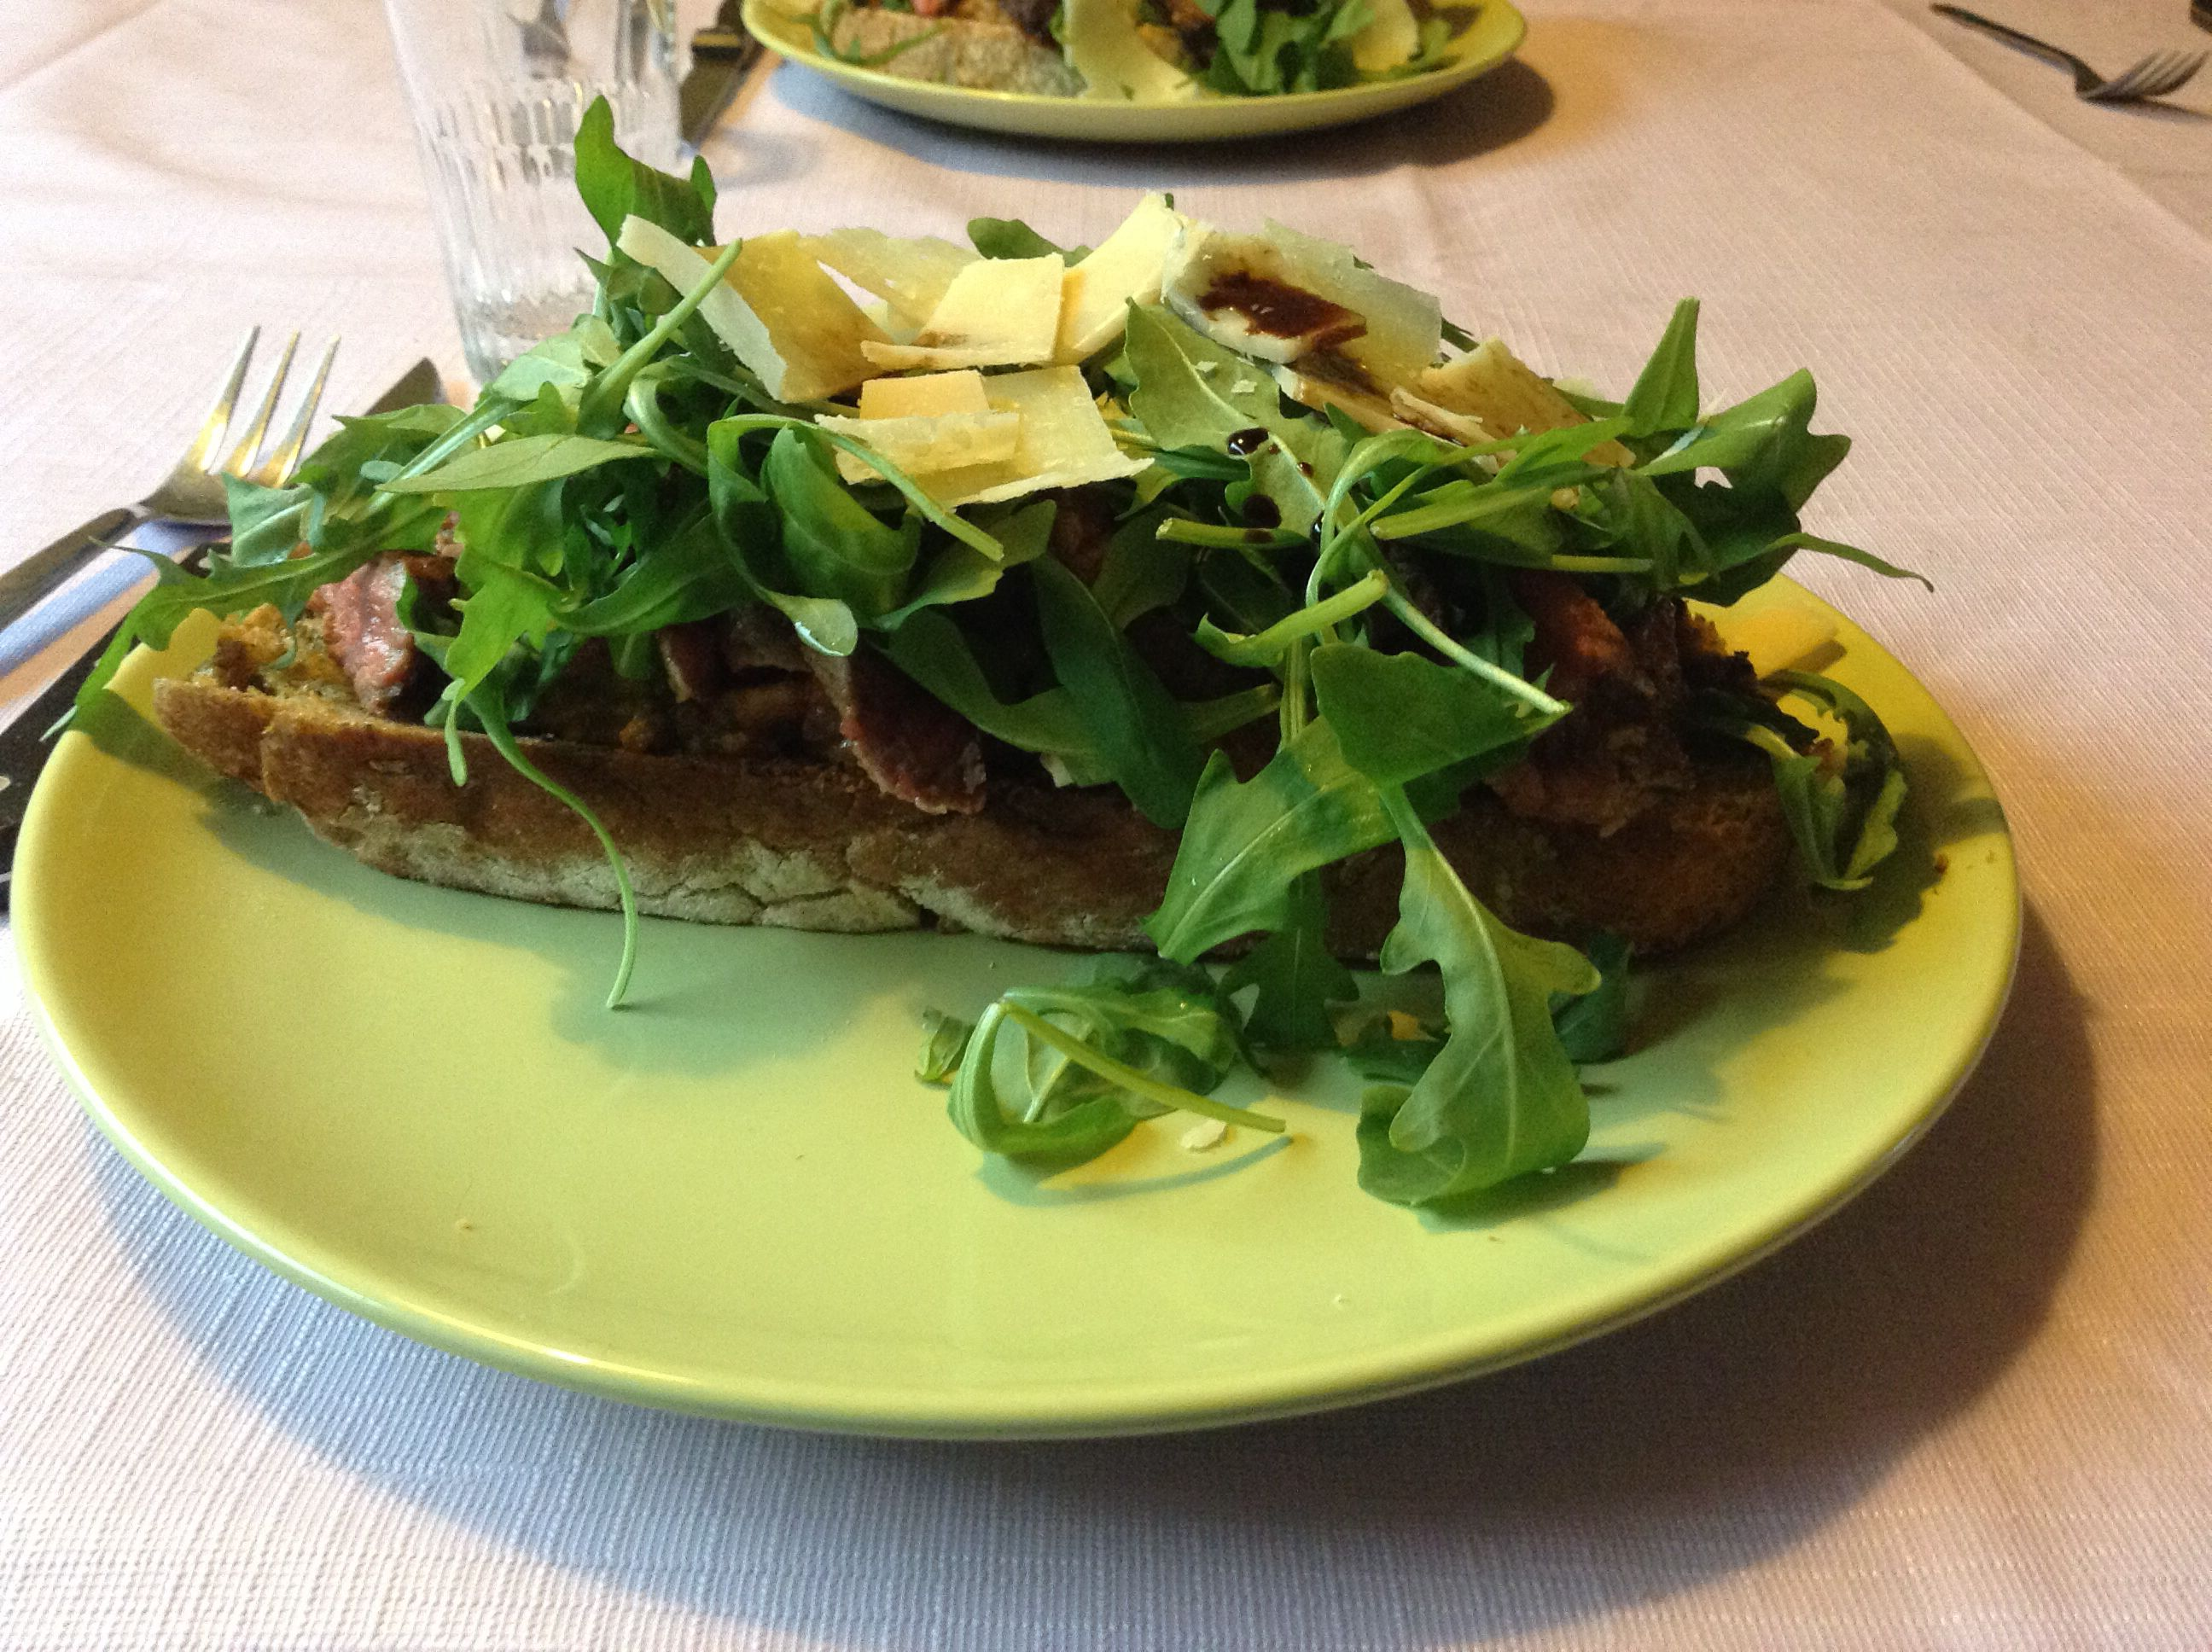 My favourite toast with steak ,tomato ,Parmesan cheese and salad